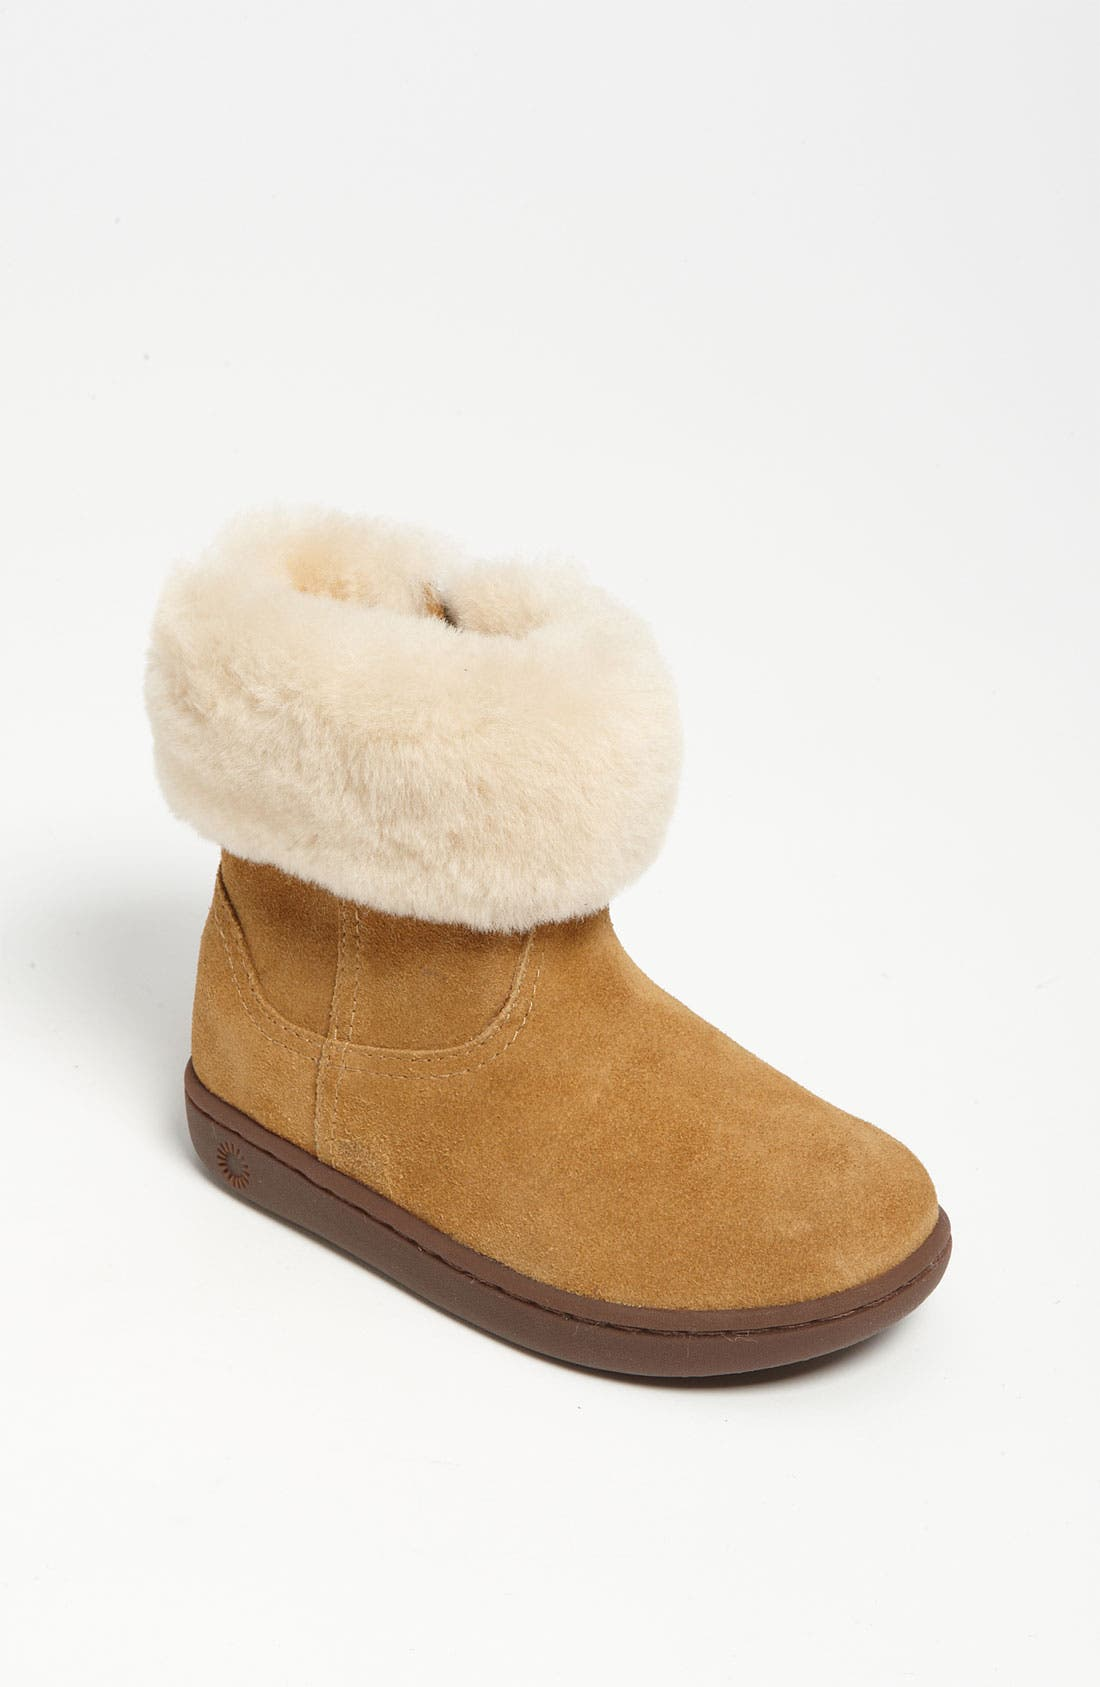 Alternate Image 1 Selected - UGG® Australia 'Jorie' Boot (Walker & Toddler)